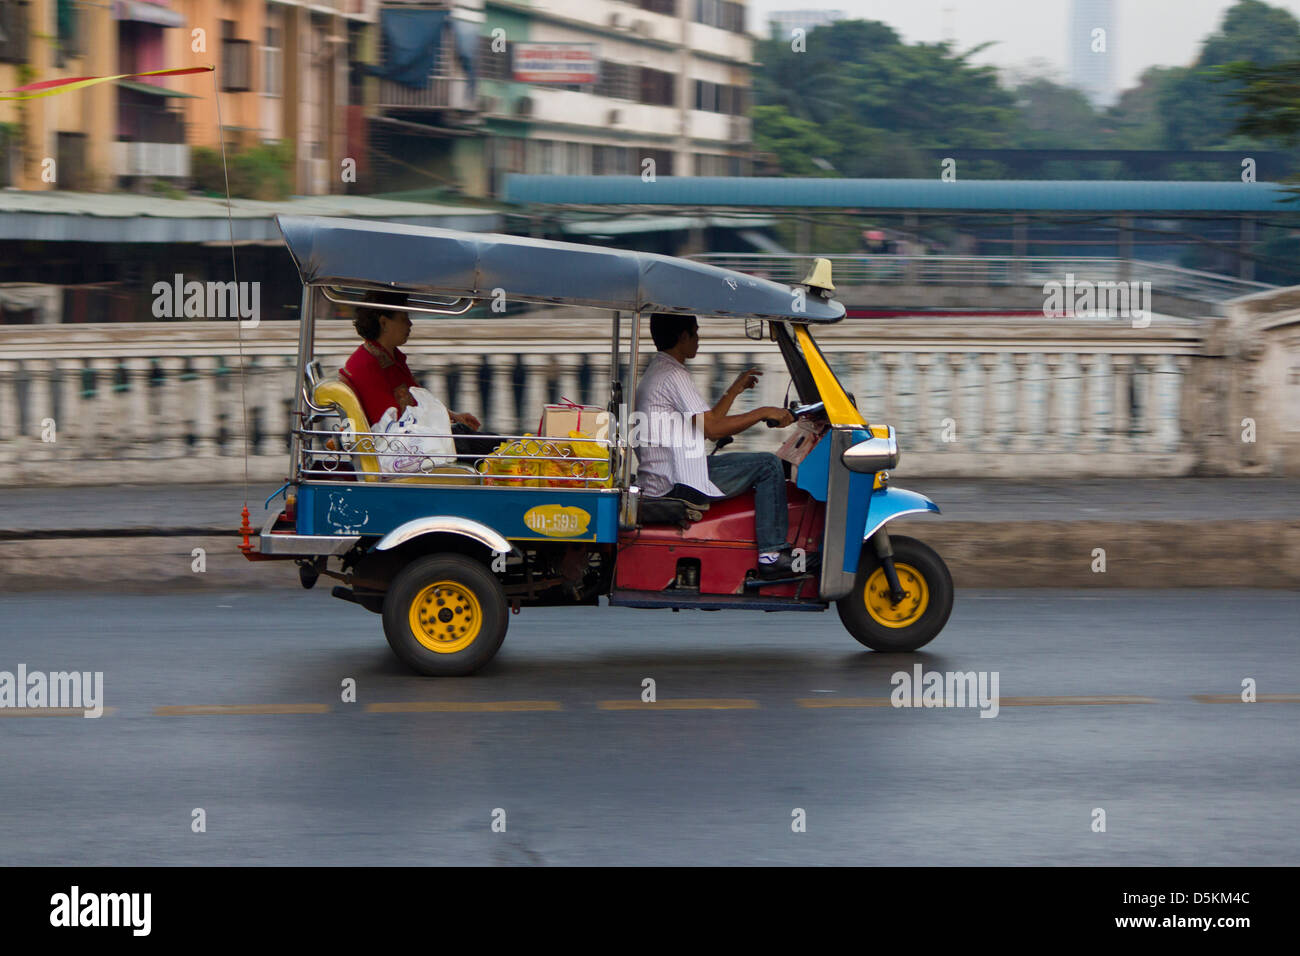 The tuktuk is an open sided taxi with a small engine  used by the city dwellers of Bangkok. - Stock Image